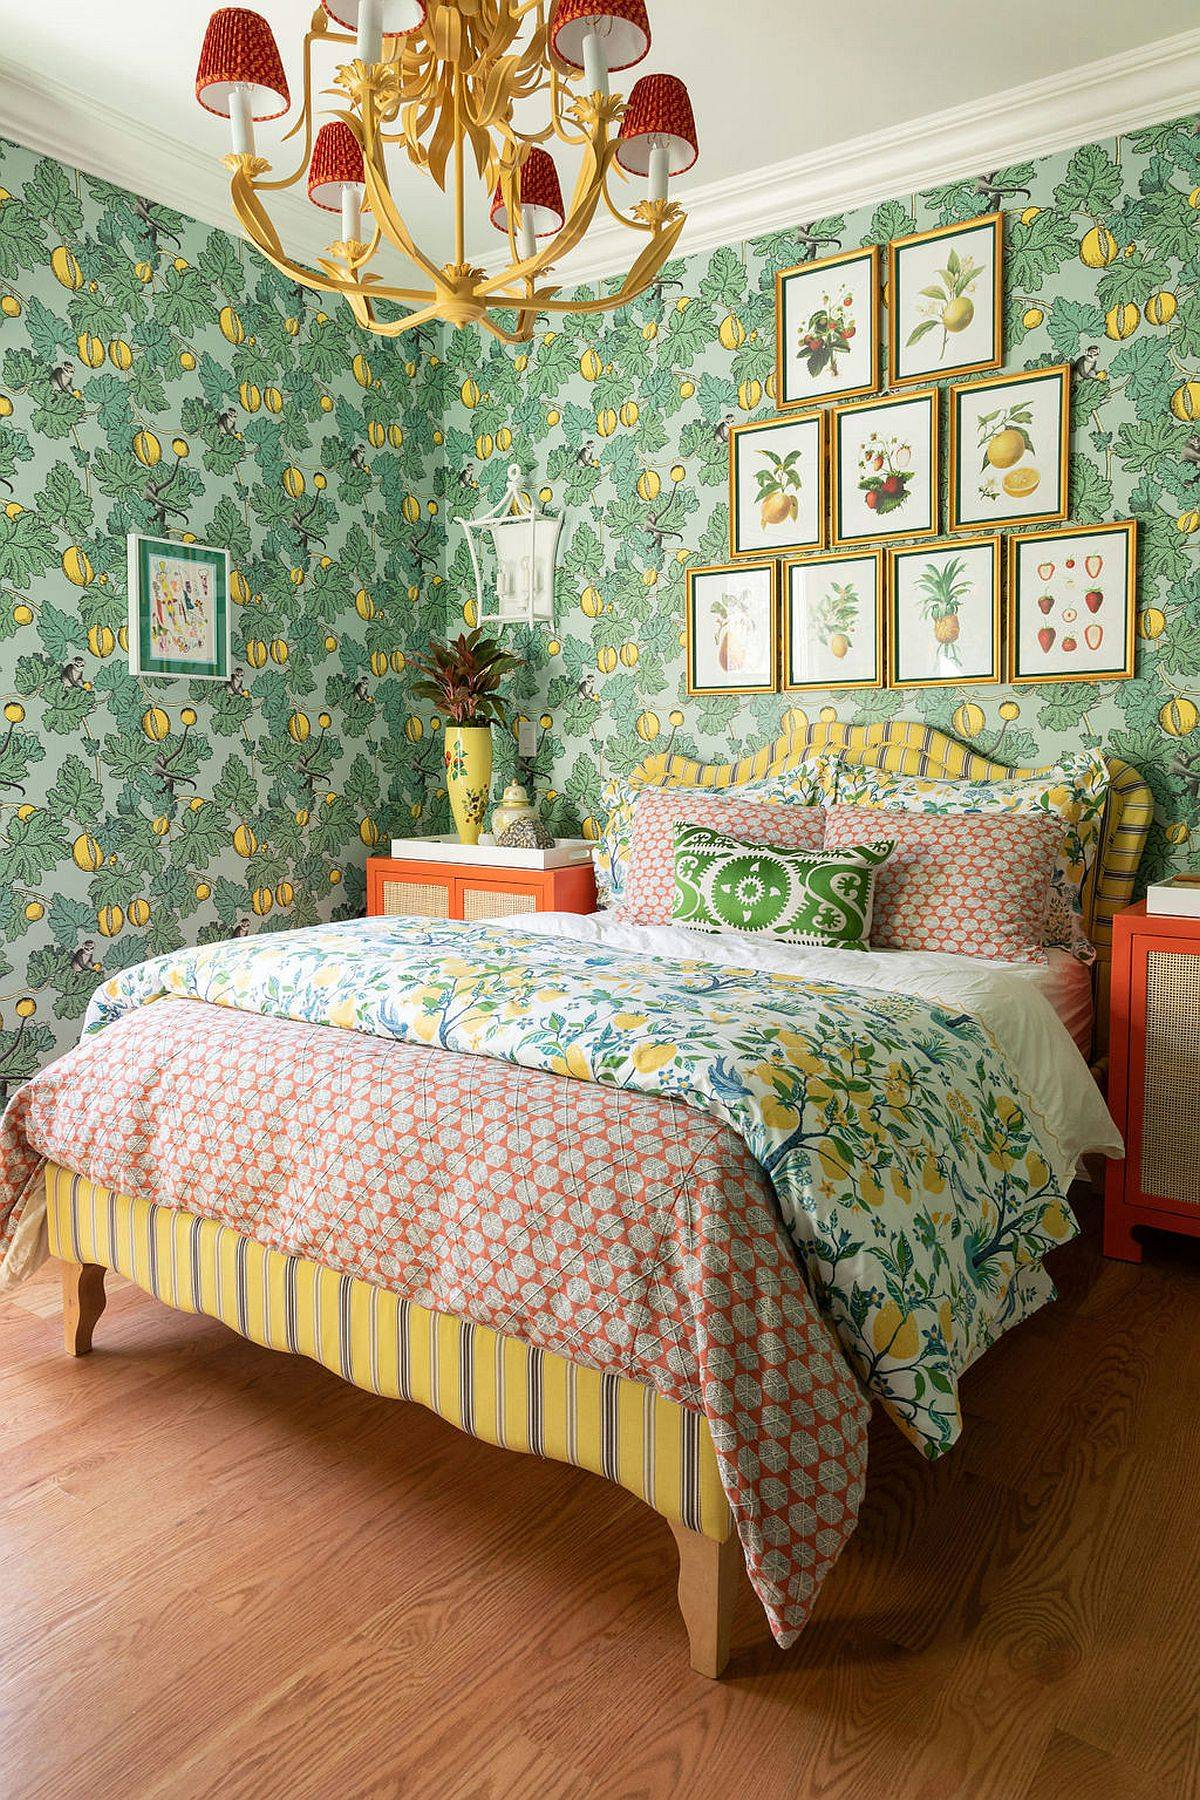 Nature-centric theme takes over the backdrop in this small bedroom